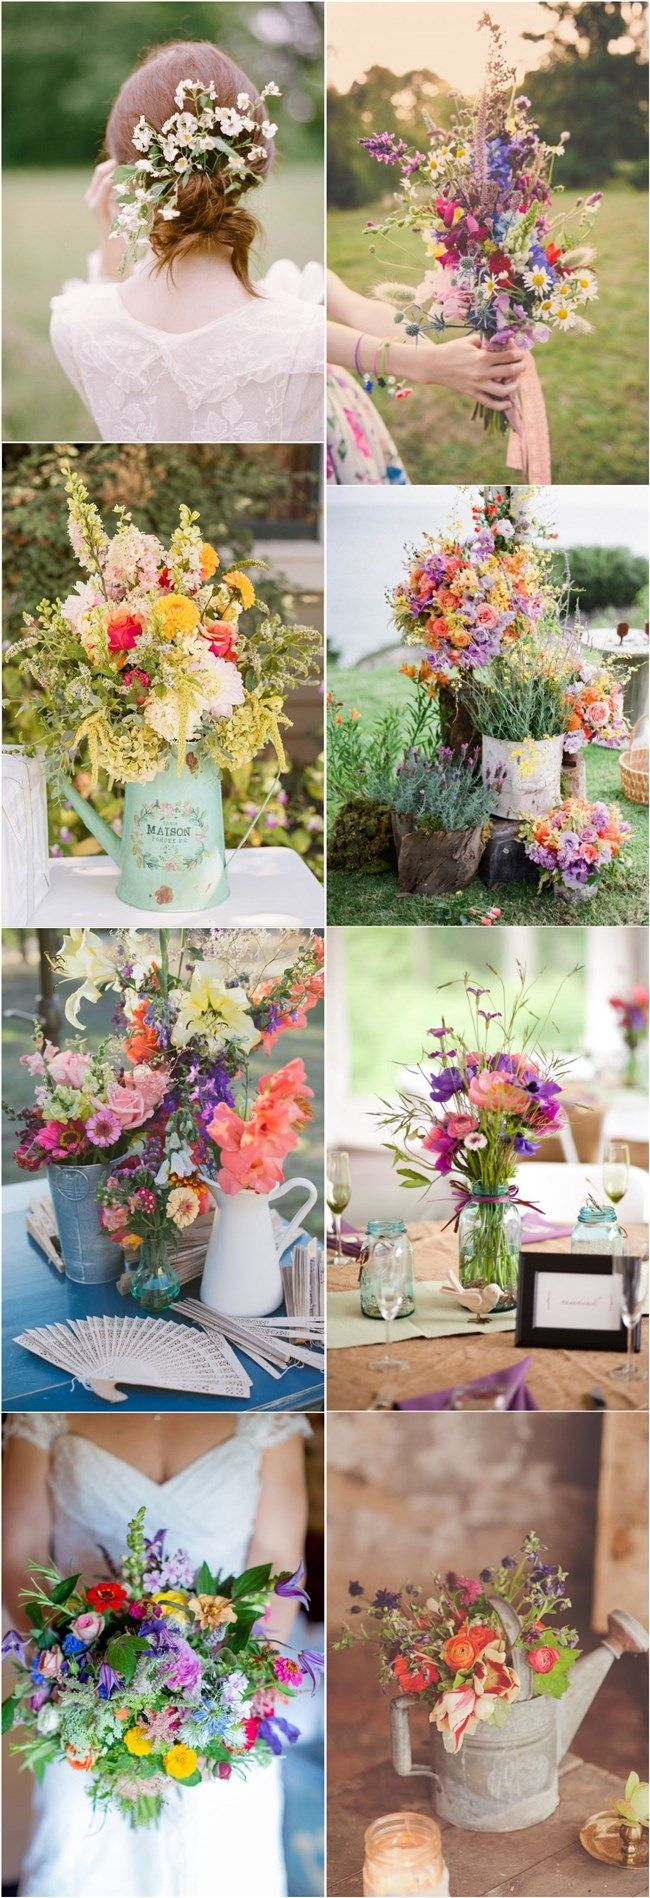 rustic-wedding-ideas-boho-wedding-ideas-wildflowers-wedding-ideas.jpg 650×1,898 ピクセル